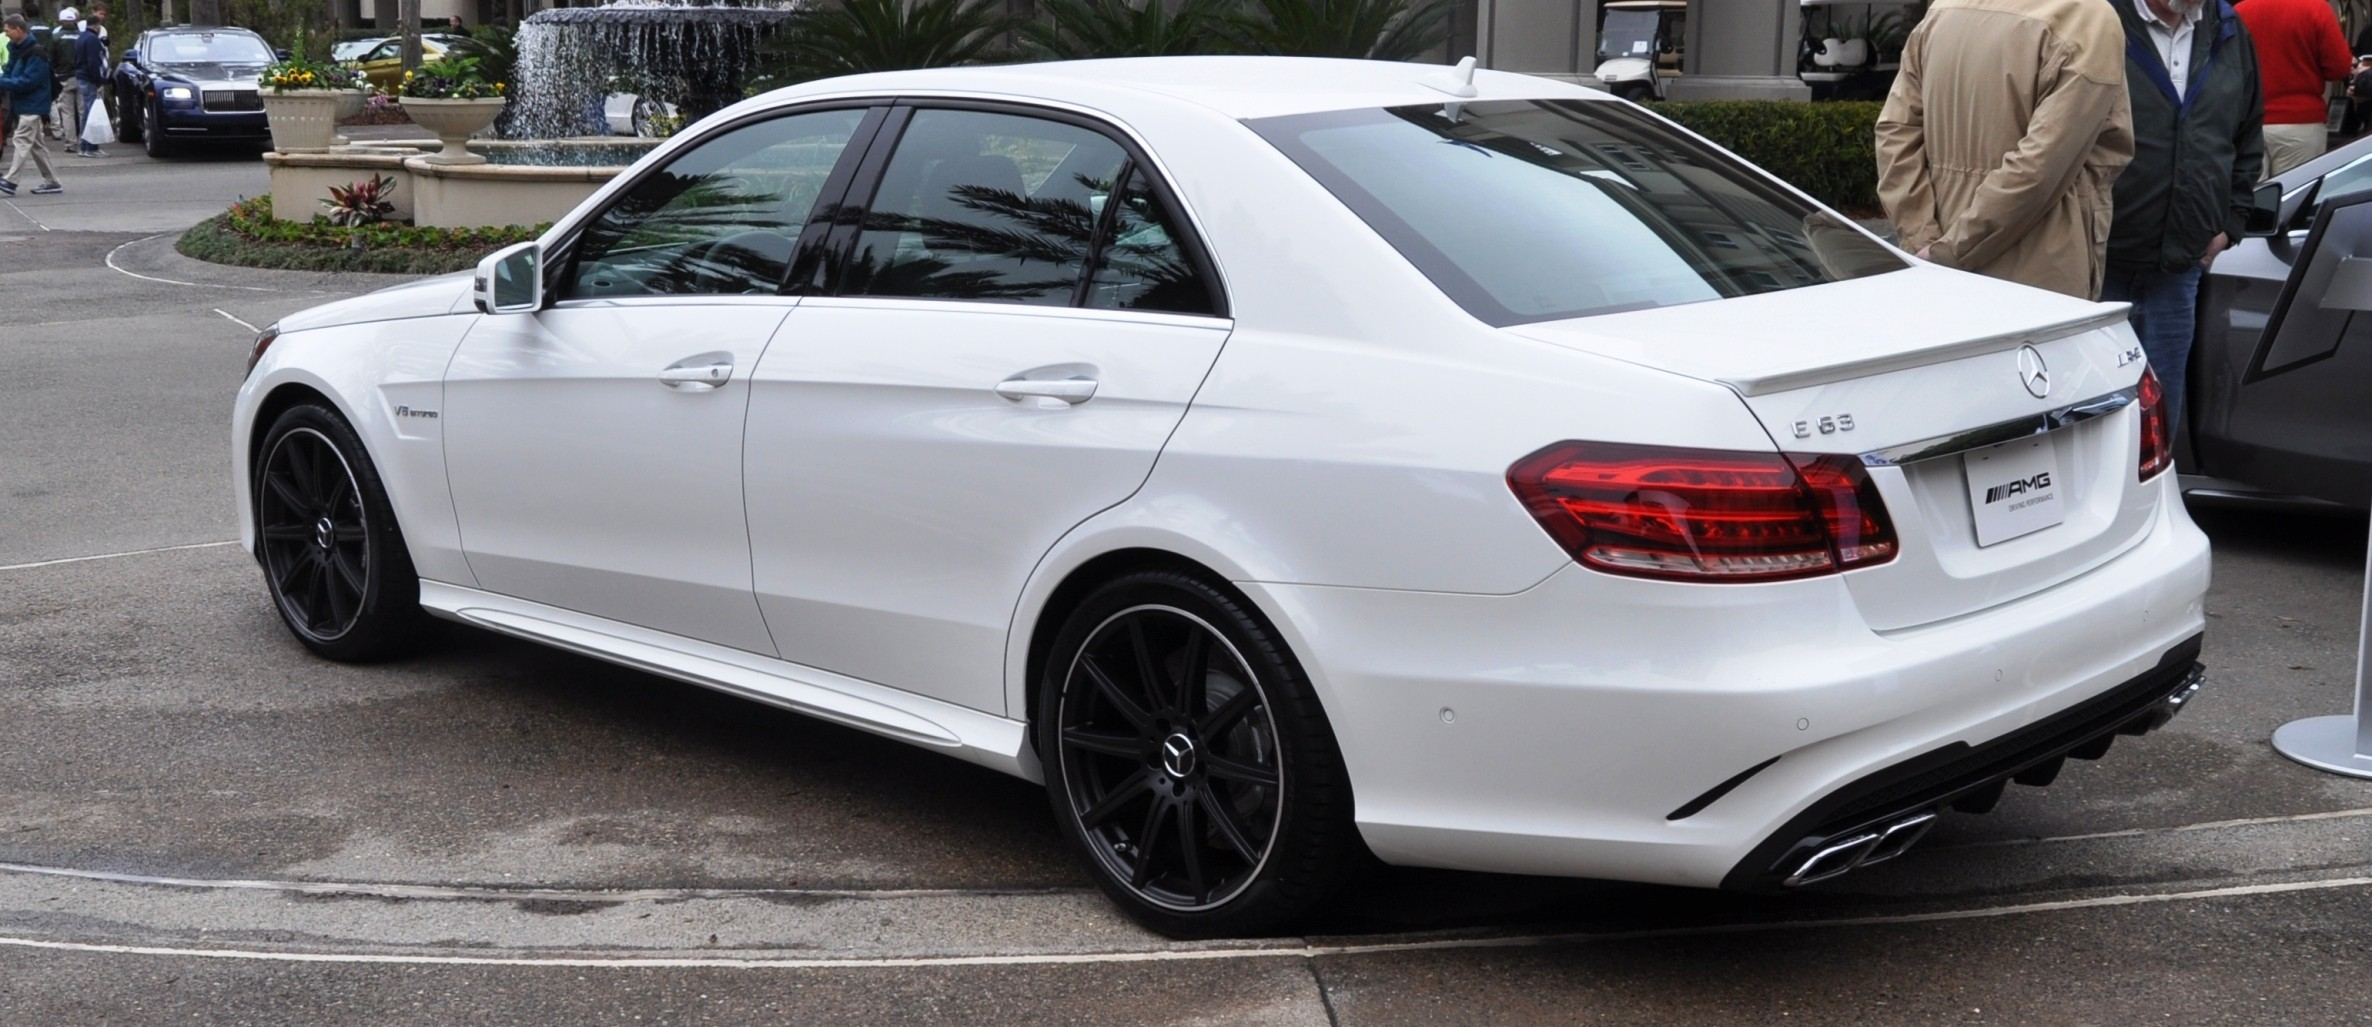 The White Knight -- 2014 Mercedes-Benz E63 AMG 4Matic S-Model On Camera + 21 All-New Photos 15